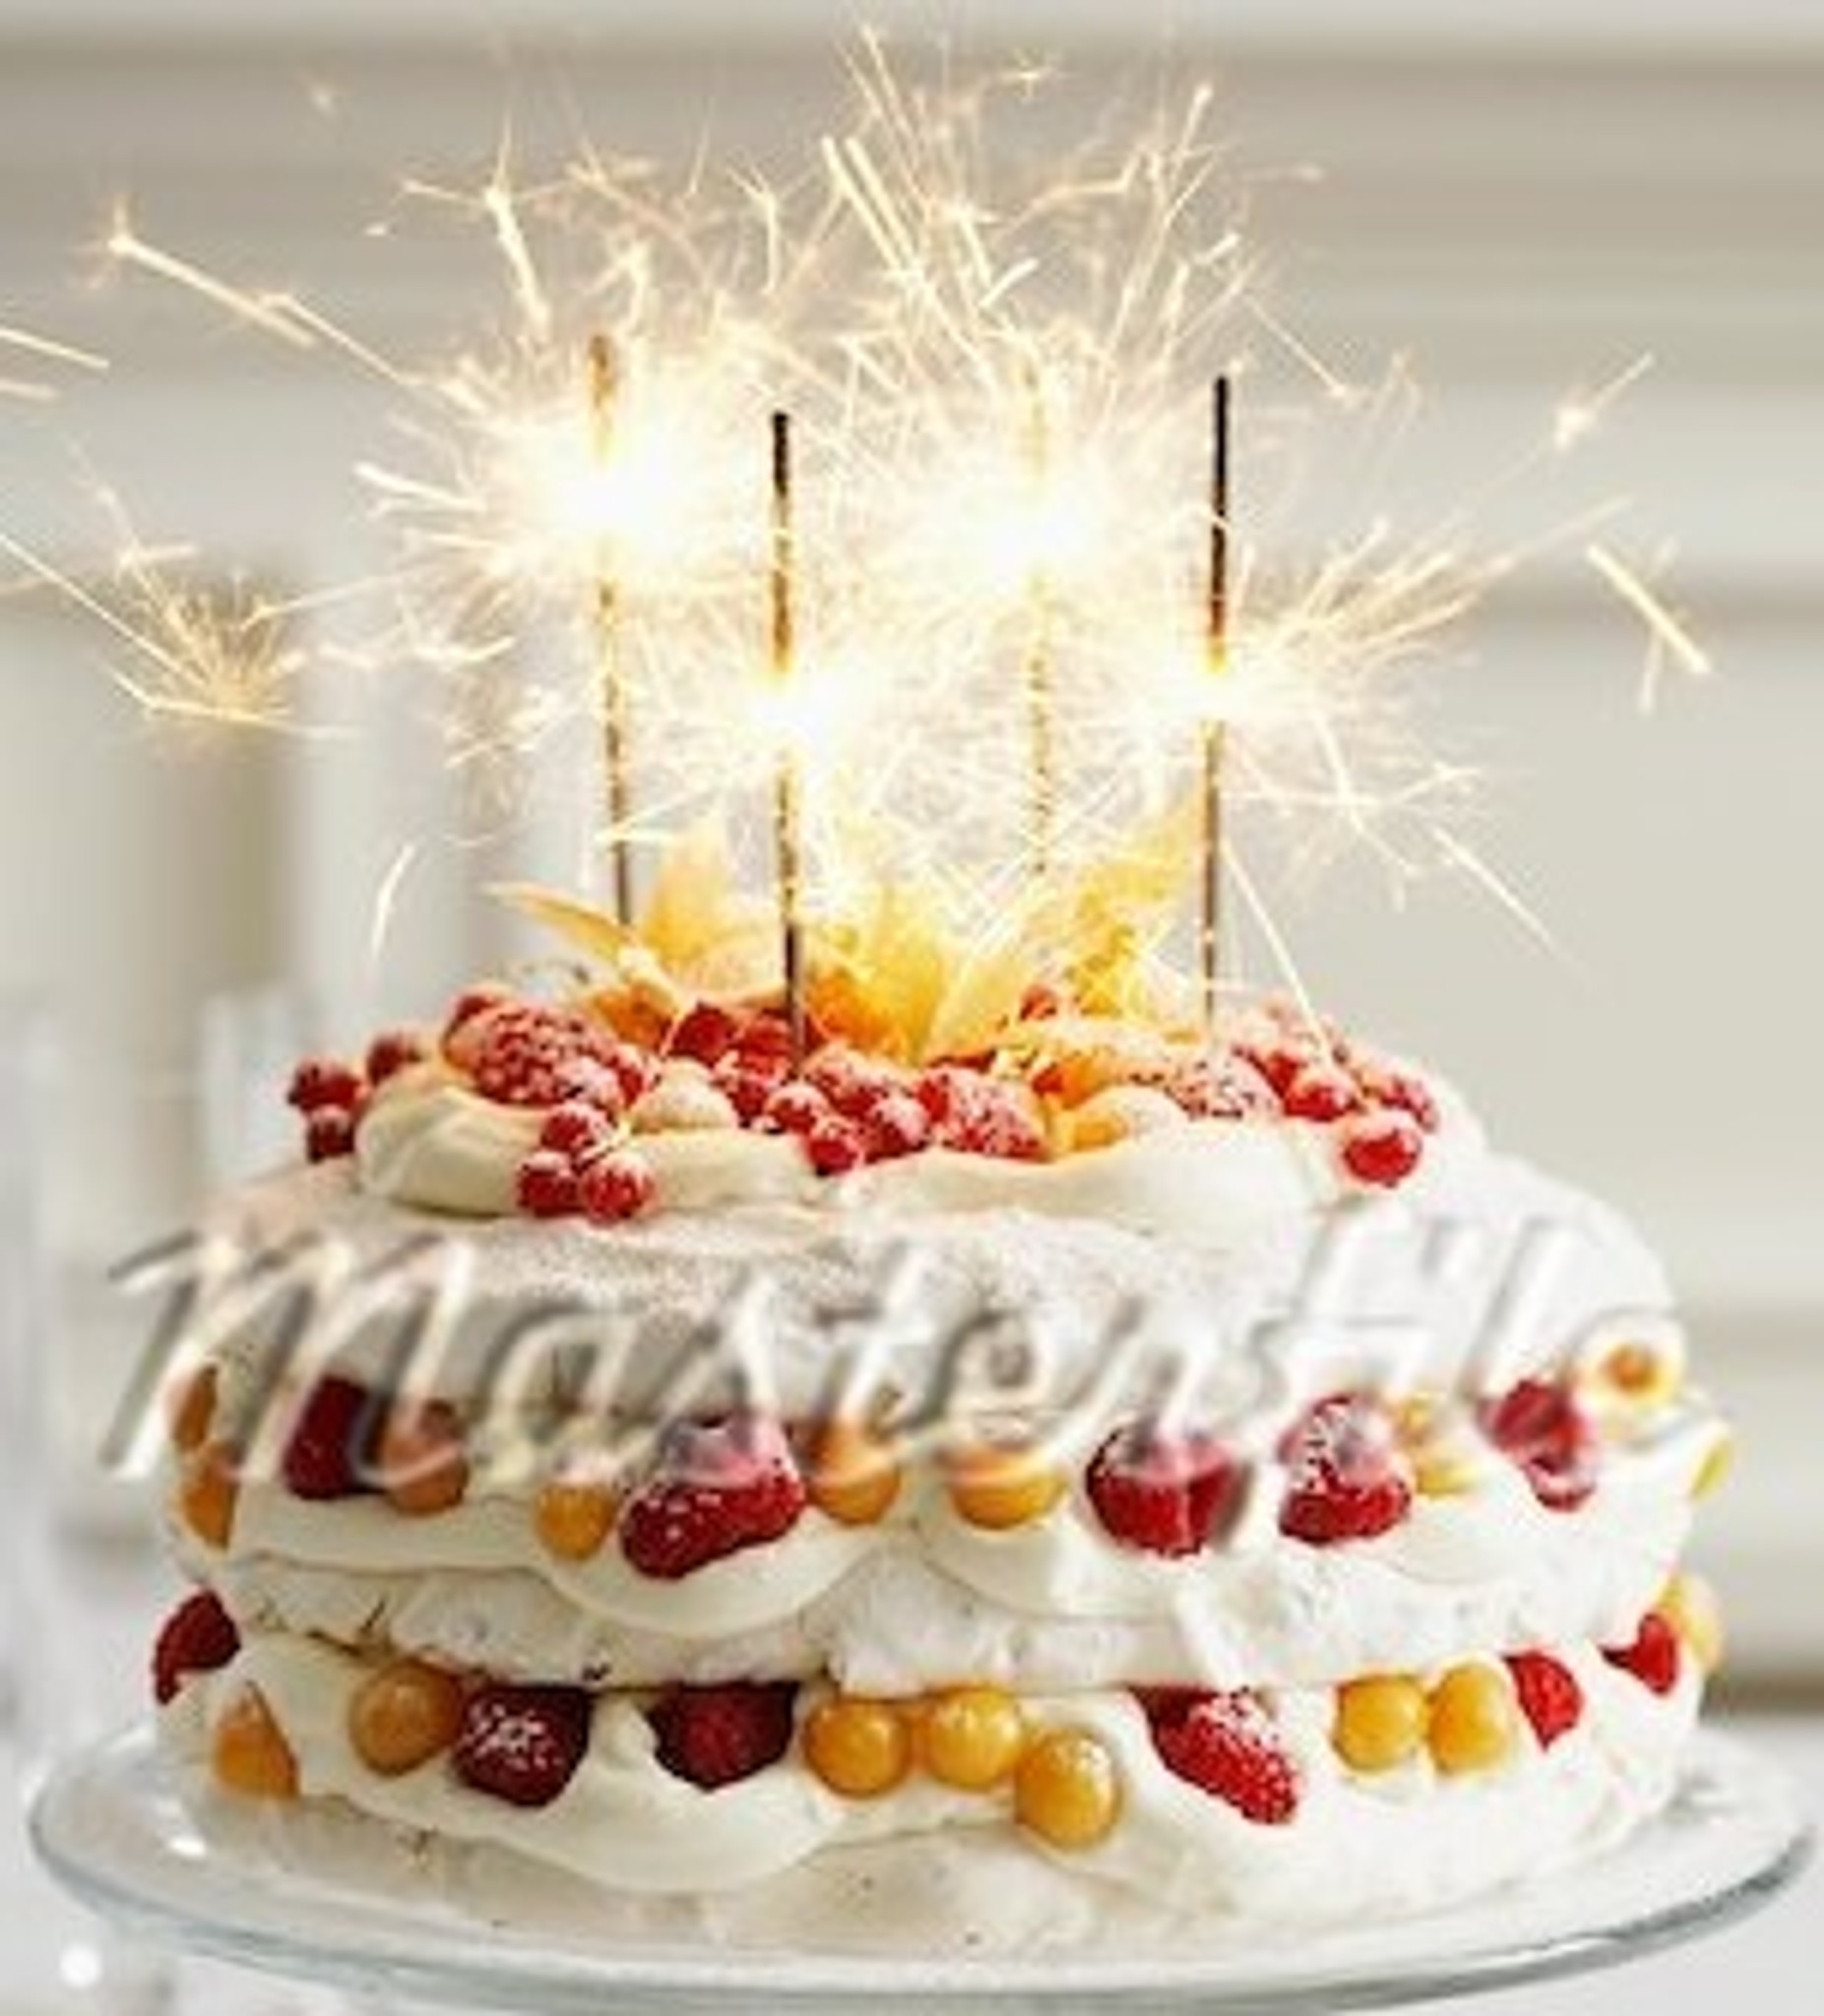 Enjoyable Sparkling Cake Toppers Birthdays Weddings 7 Candles Sparklers Funny Birthday Cards Online Alyptdamsfinfo